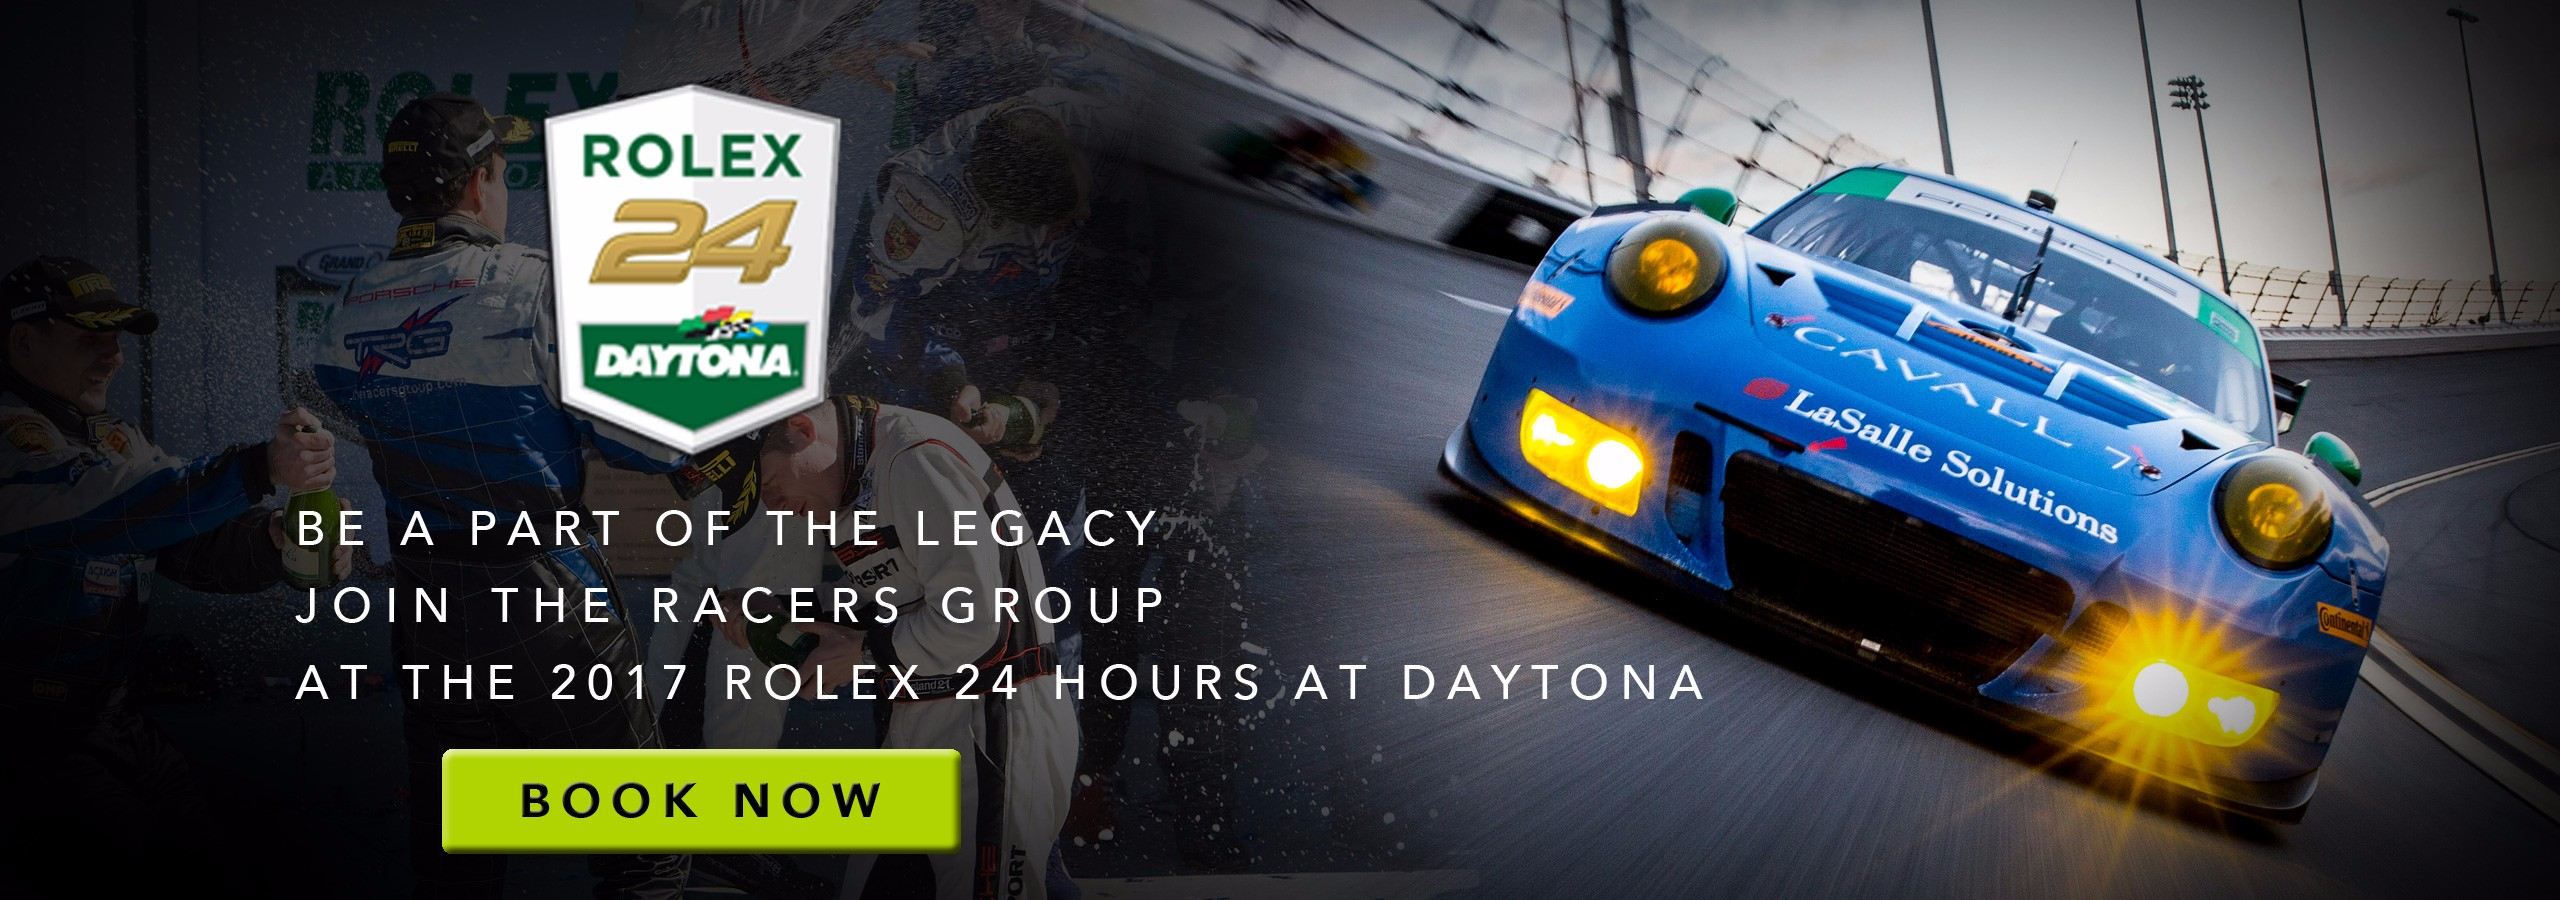 TRG's VIP Motorsports Experience at the Rolex 24 Hours at Daytona